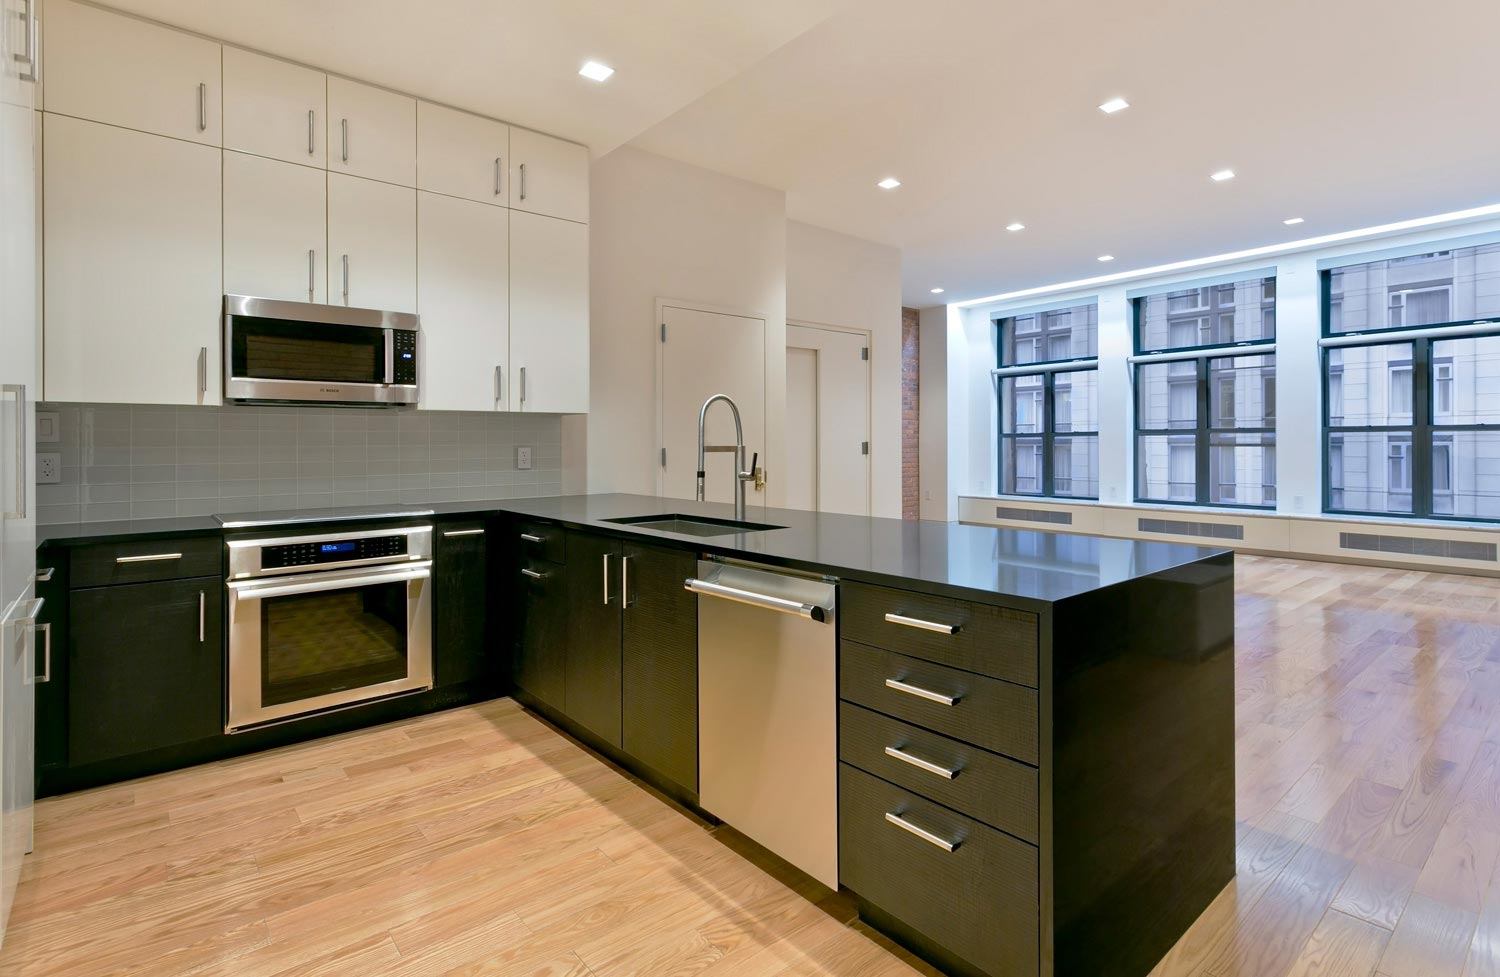 The open kitchen-living room at this West Broadway loft renovation by OCV Architects.